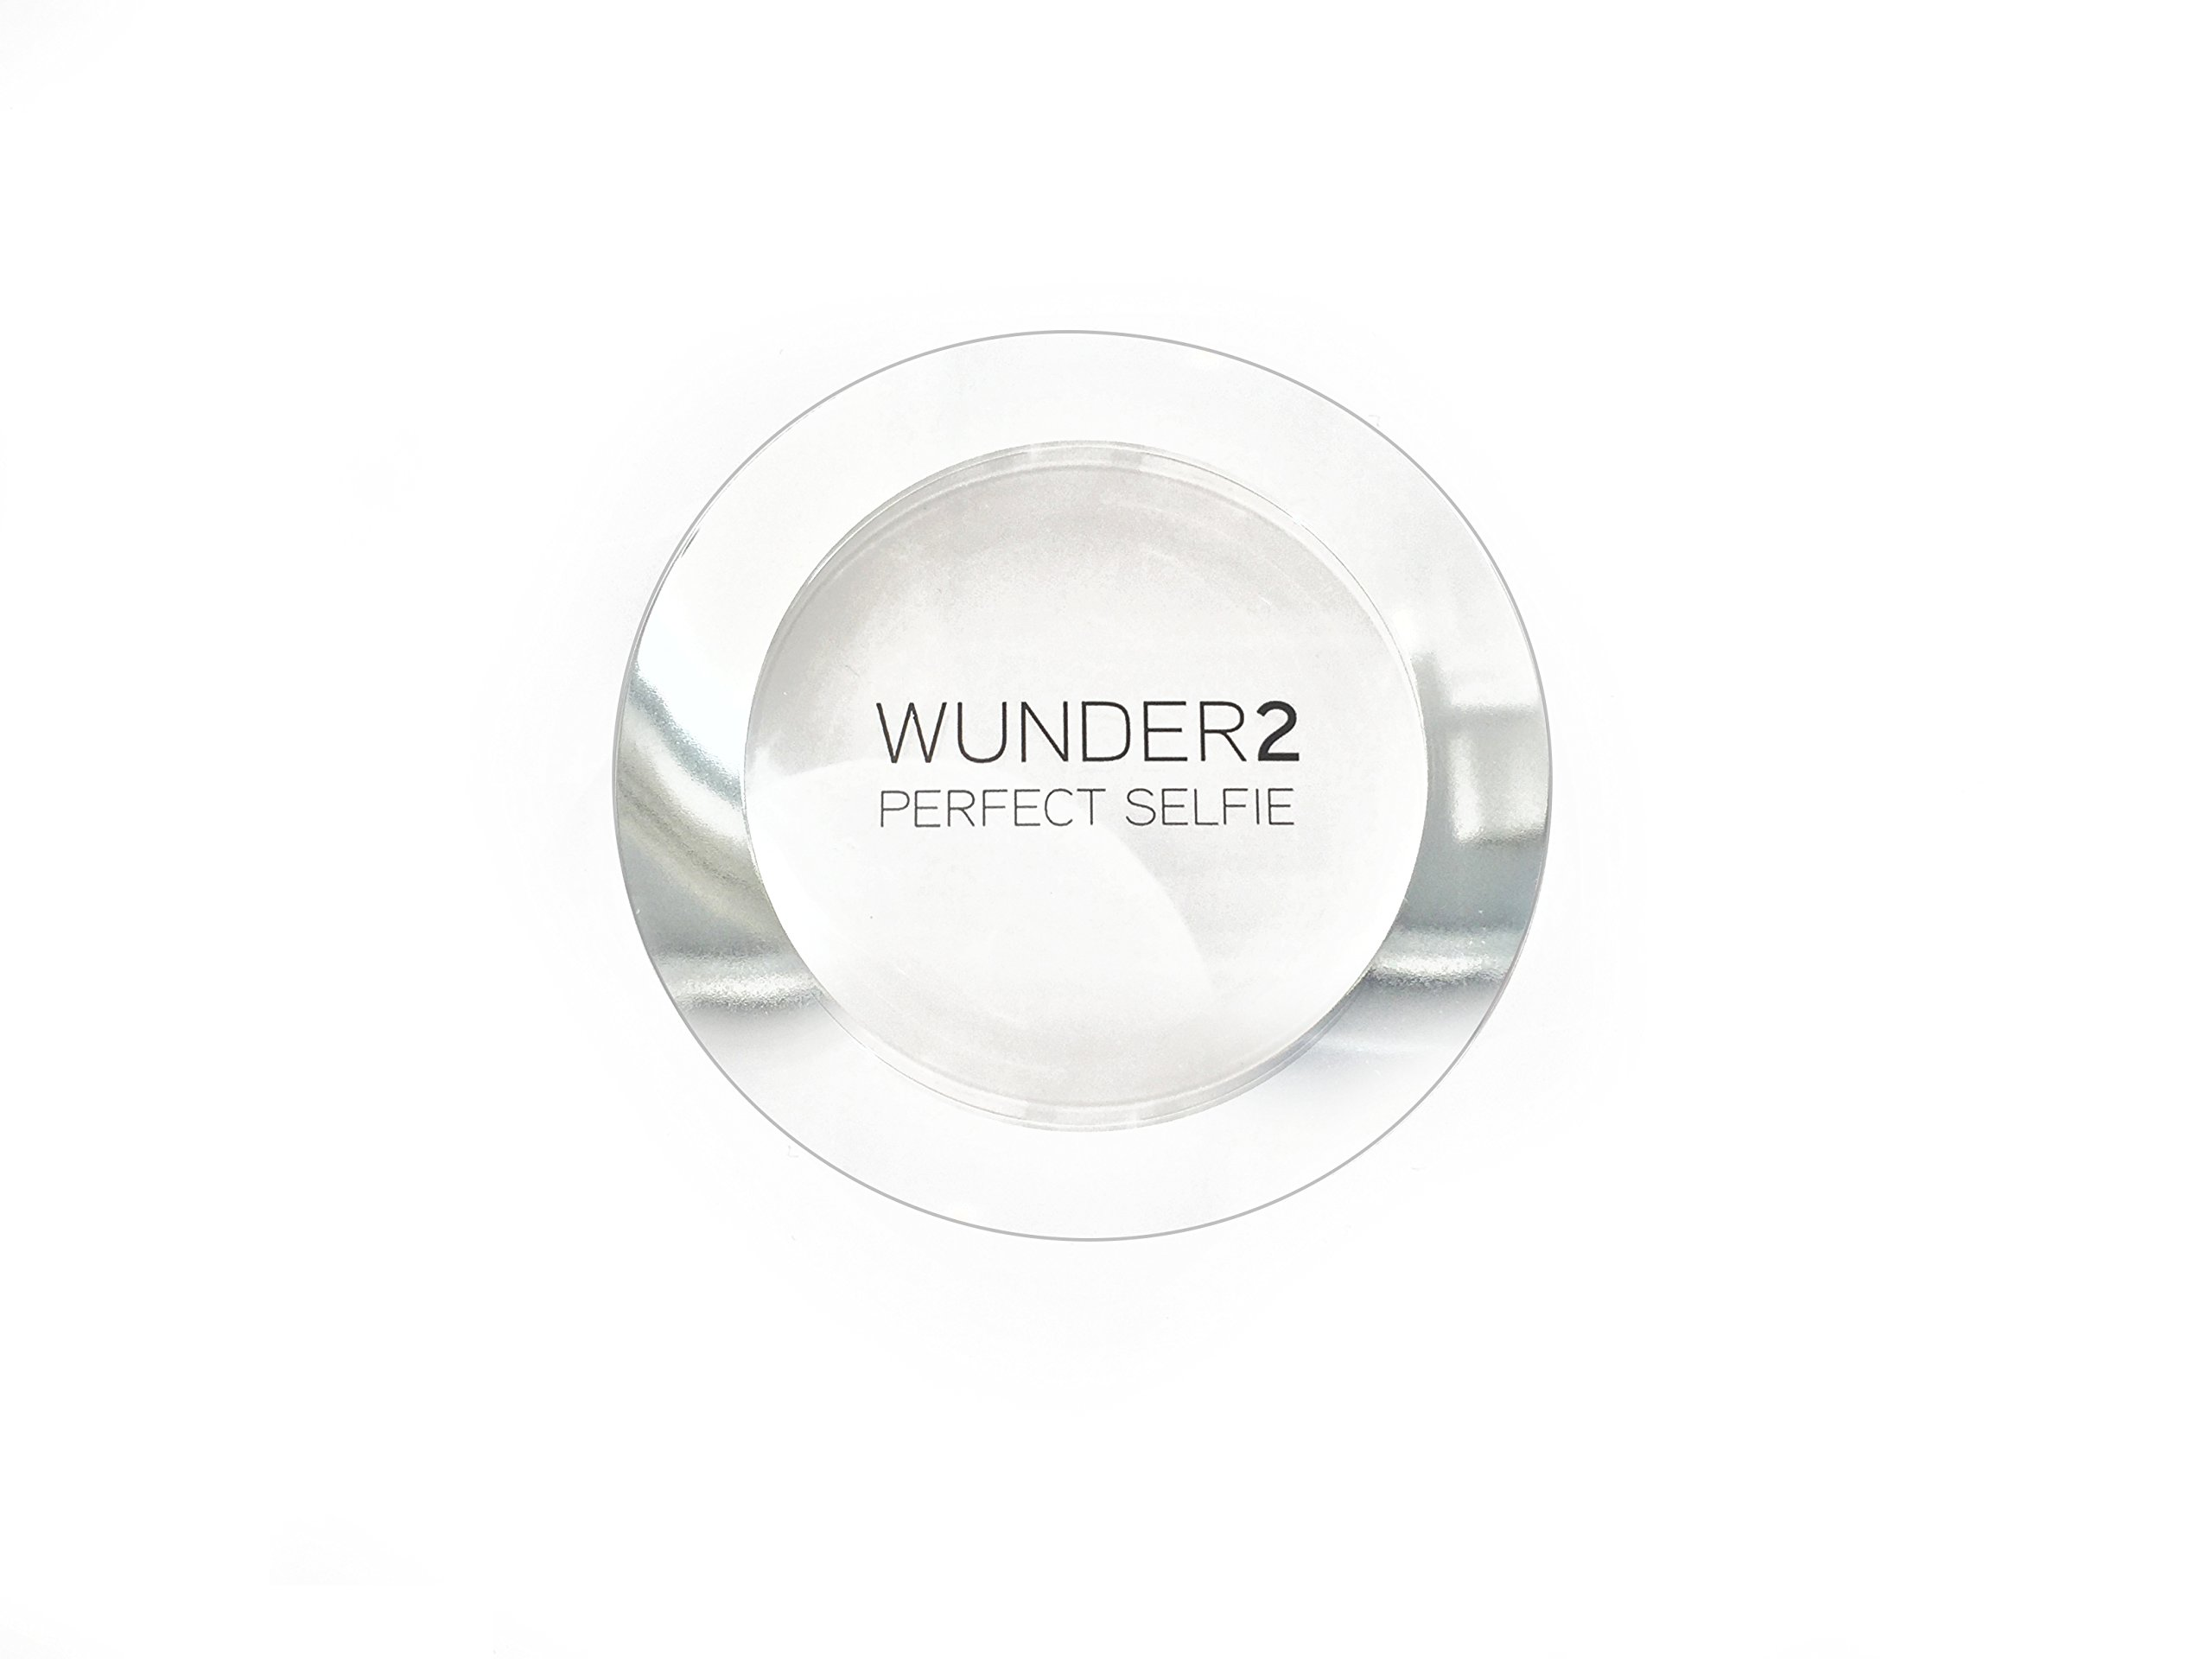 WUNDER2 PERFECT SELFIE HD Photo Finishing Powder - Translucent Setting Powder Makeup by Wunder2